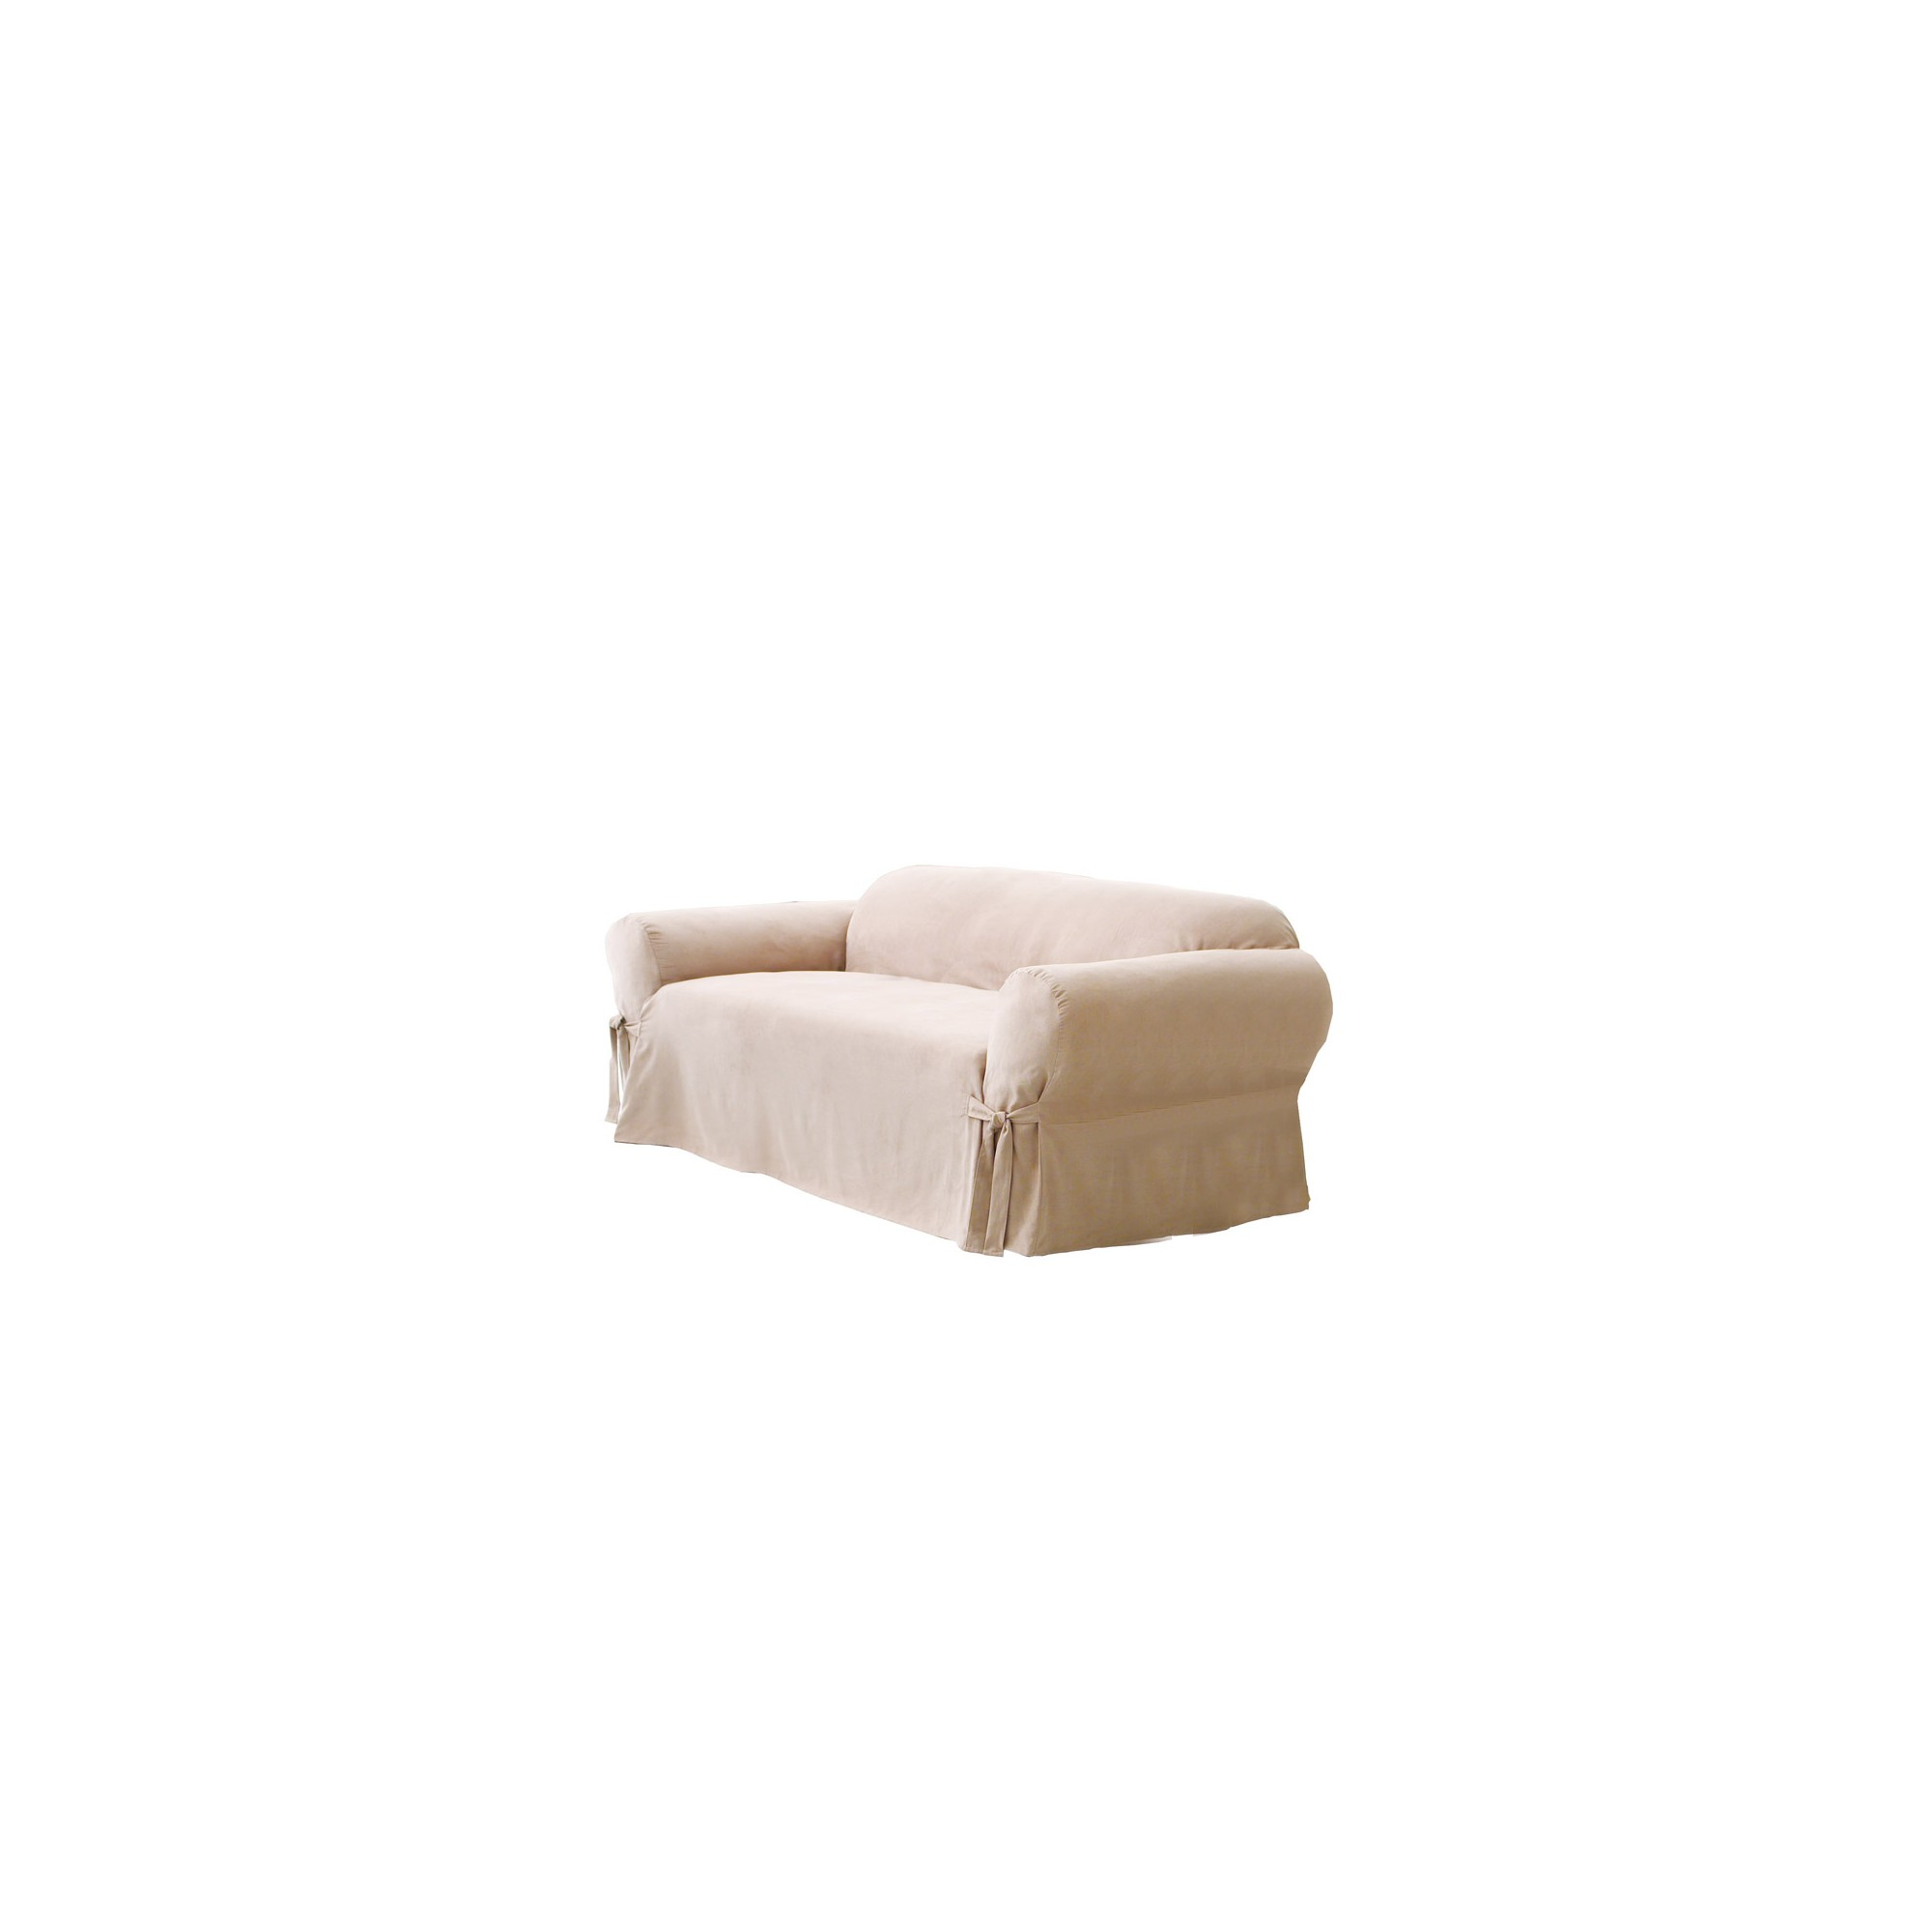 Soft Suede Sofa Slipcover Taupe - Sure Fit, Brown